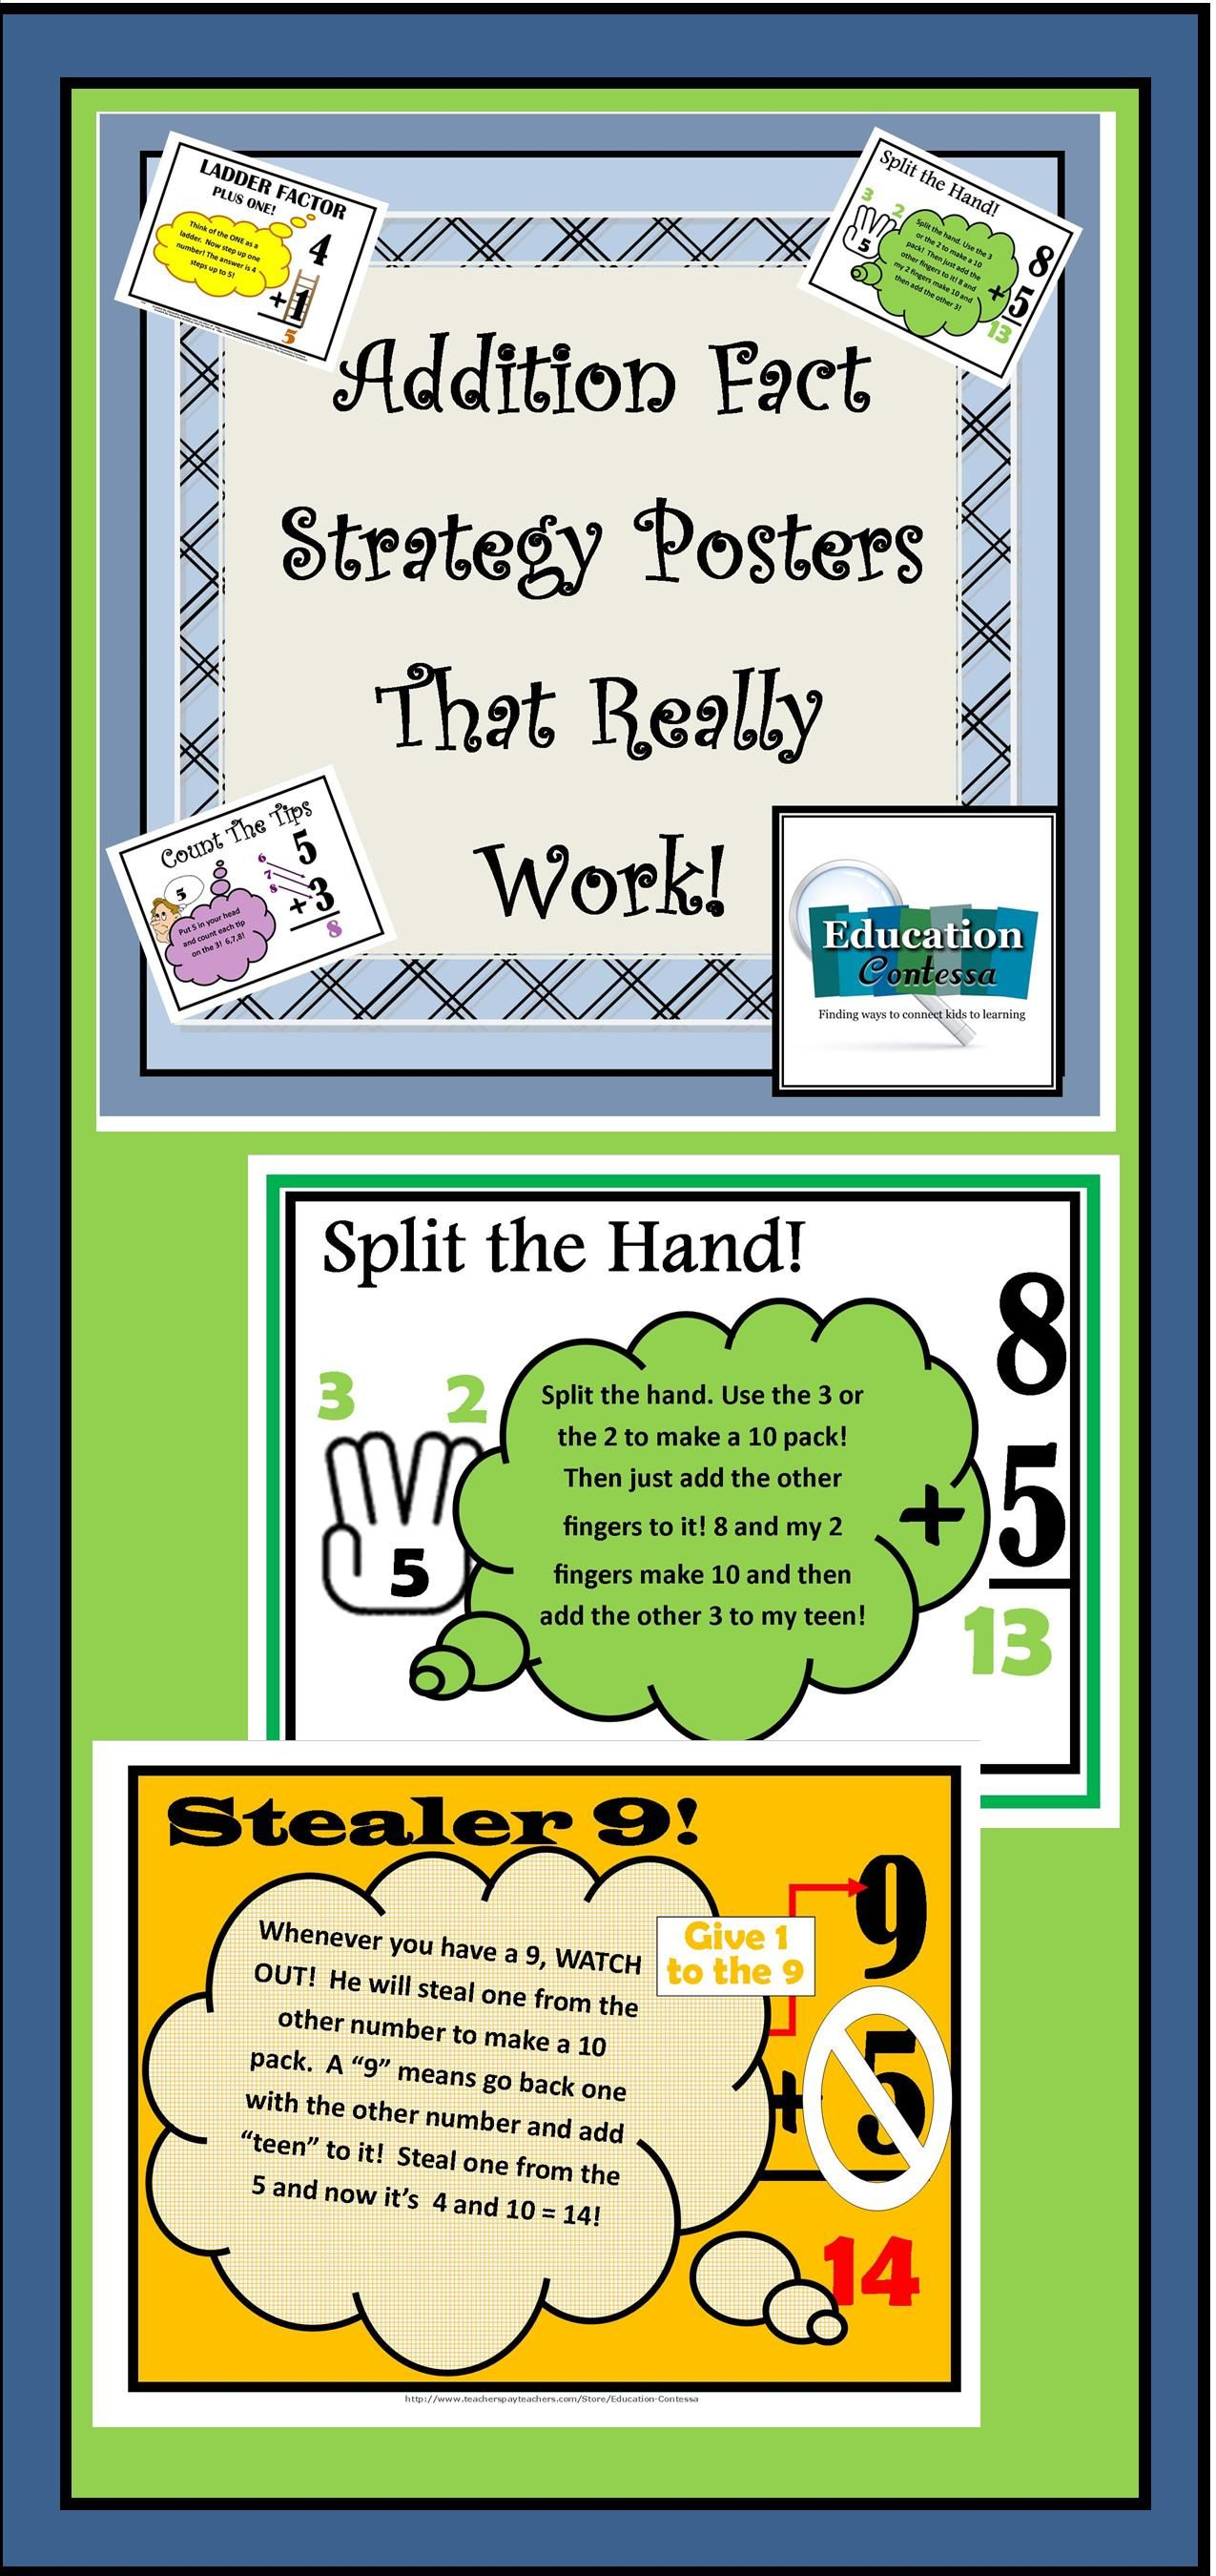 Addition fact strategy posters to use with flash cards | Awesome ...